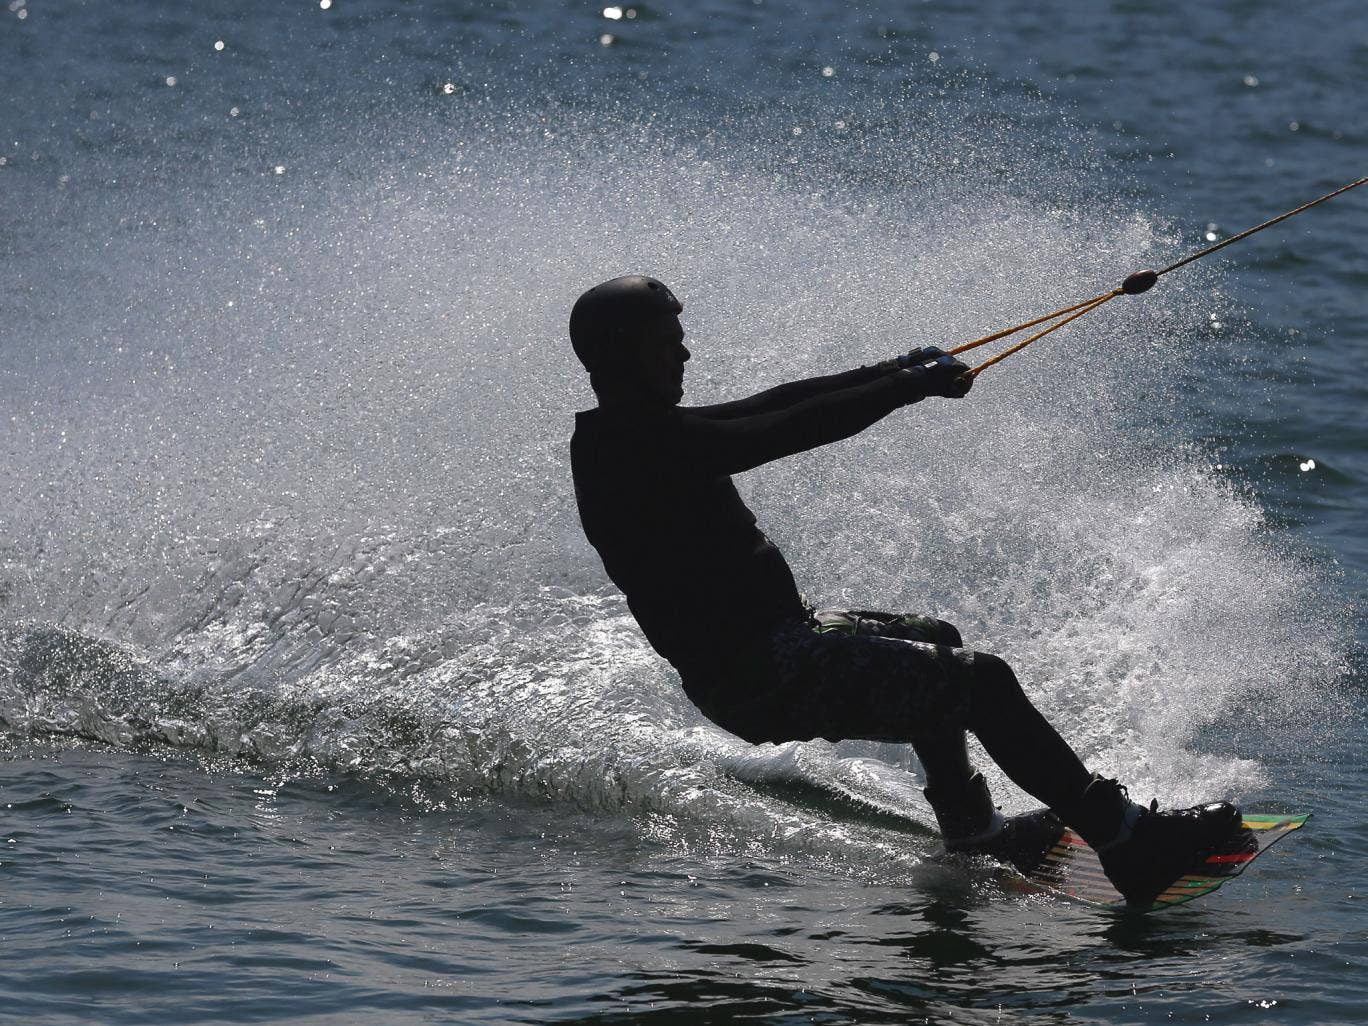 LANGENFELD, GERMANY - MAY 05: A Wakeboarder rides on his board at Waterski Langenfeld on May 5, 2013 in Langenfeld, Germany.